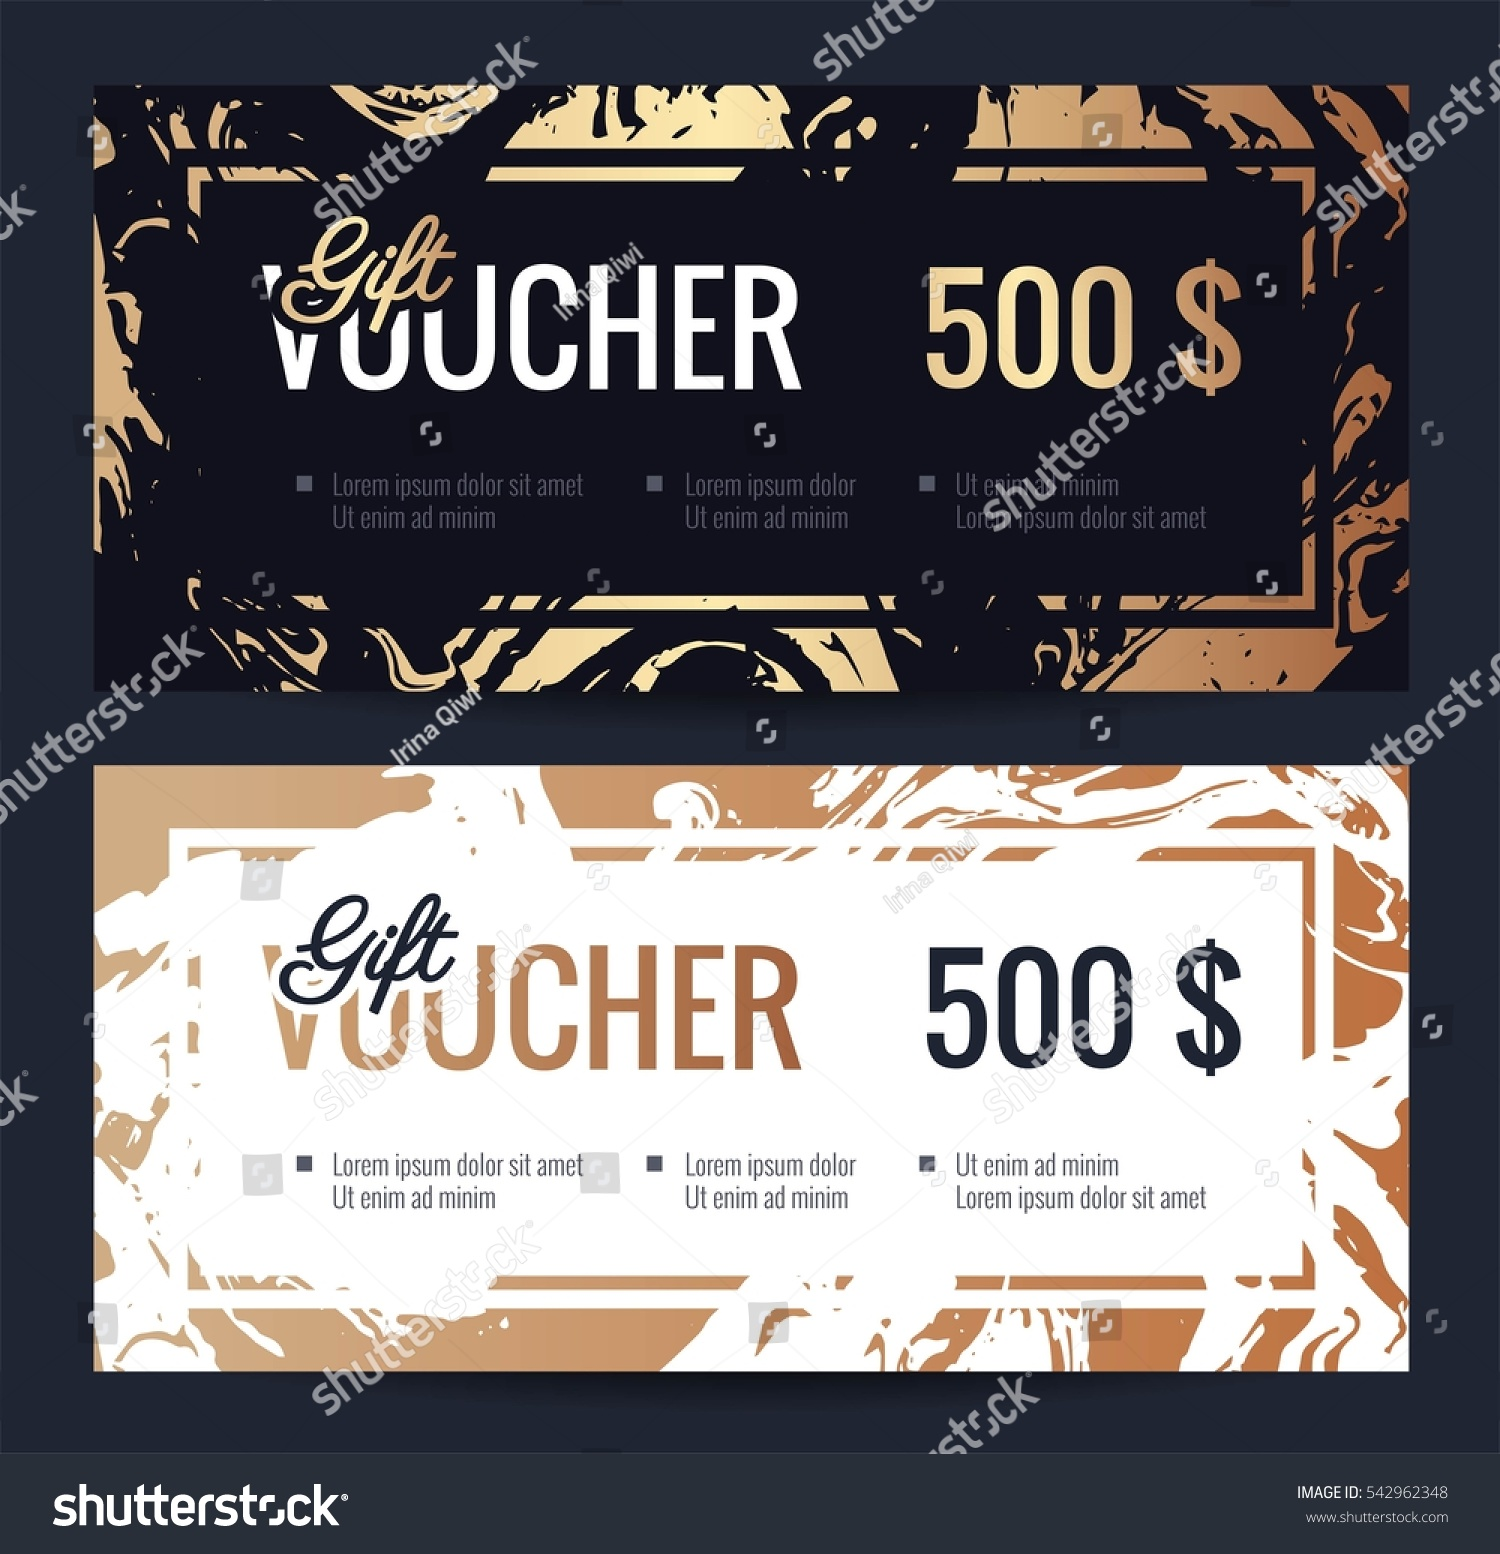 Gift voucher coupon discount elegant gift gift voucher coupon discount elegant gift certificate template with handmade gold marble texture shopping yelopaper Choice Image